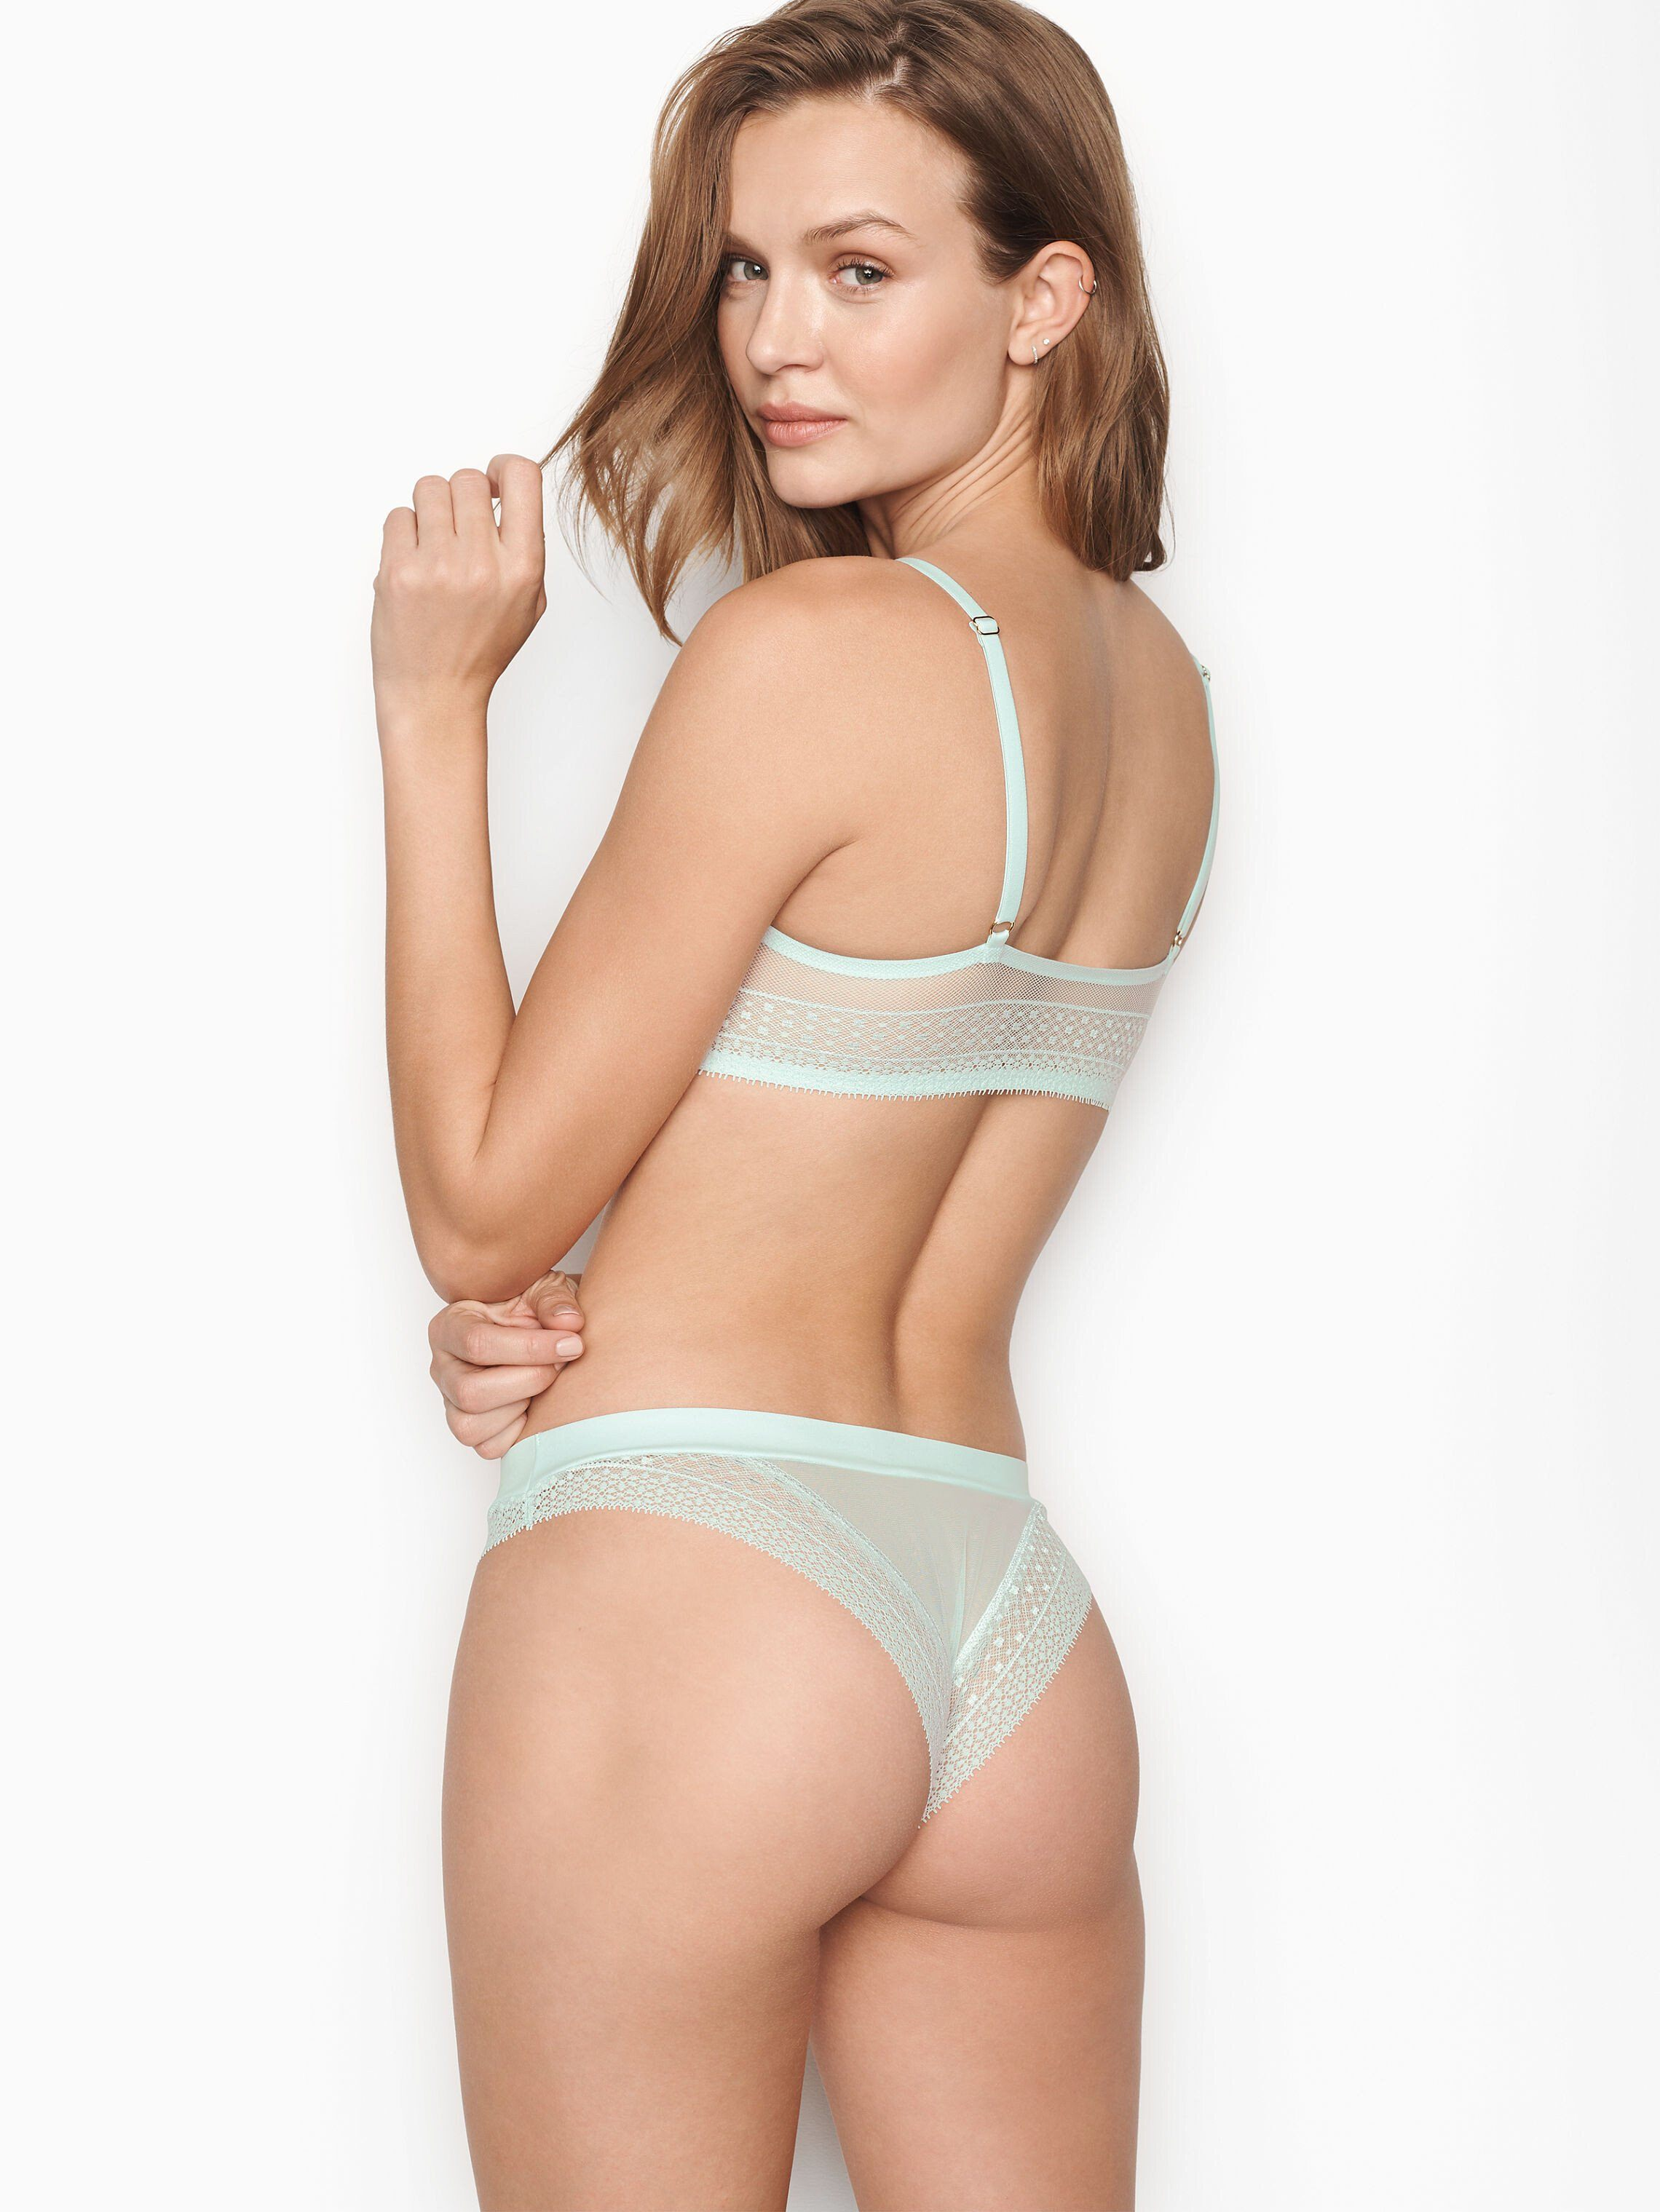 Josephine Skriver in Victoria's Secret Photoshoot - December 2019